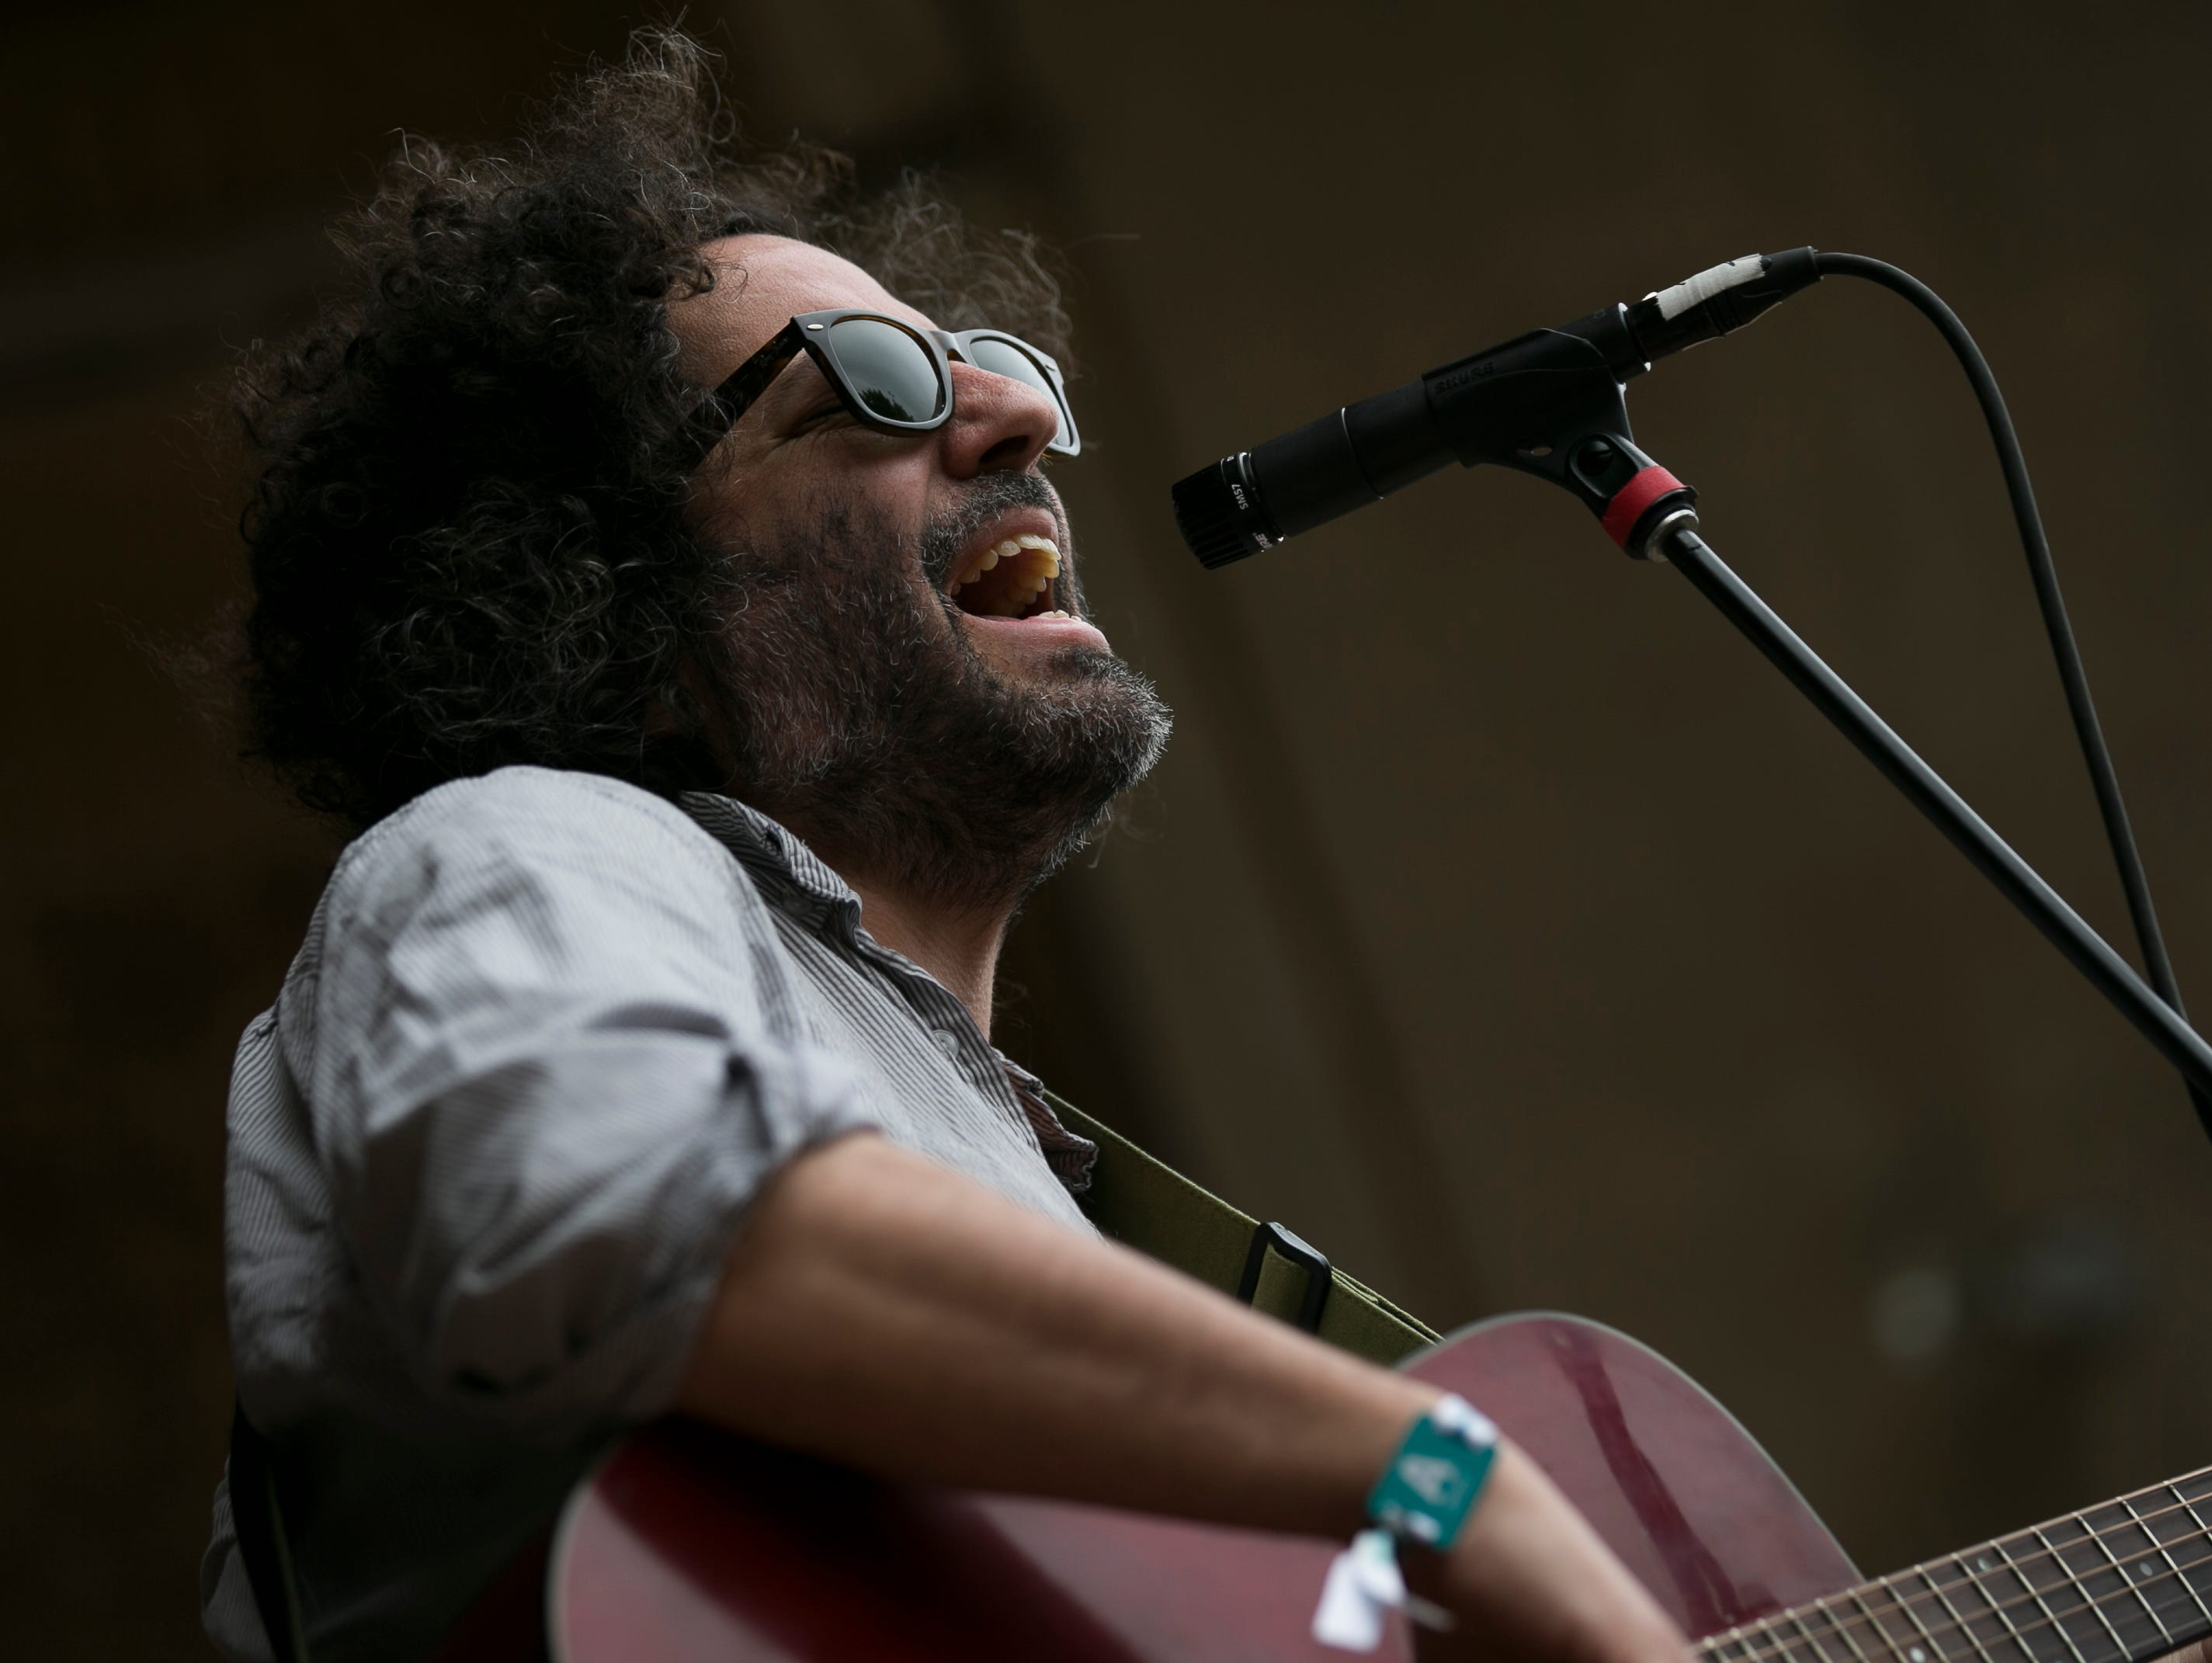 Destroyer performs at the 2019 FORM Arcosanti music festival near Camp Verde, Arizona, on May 11, 2019.